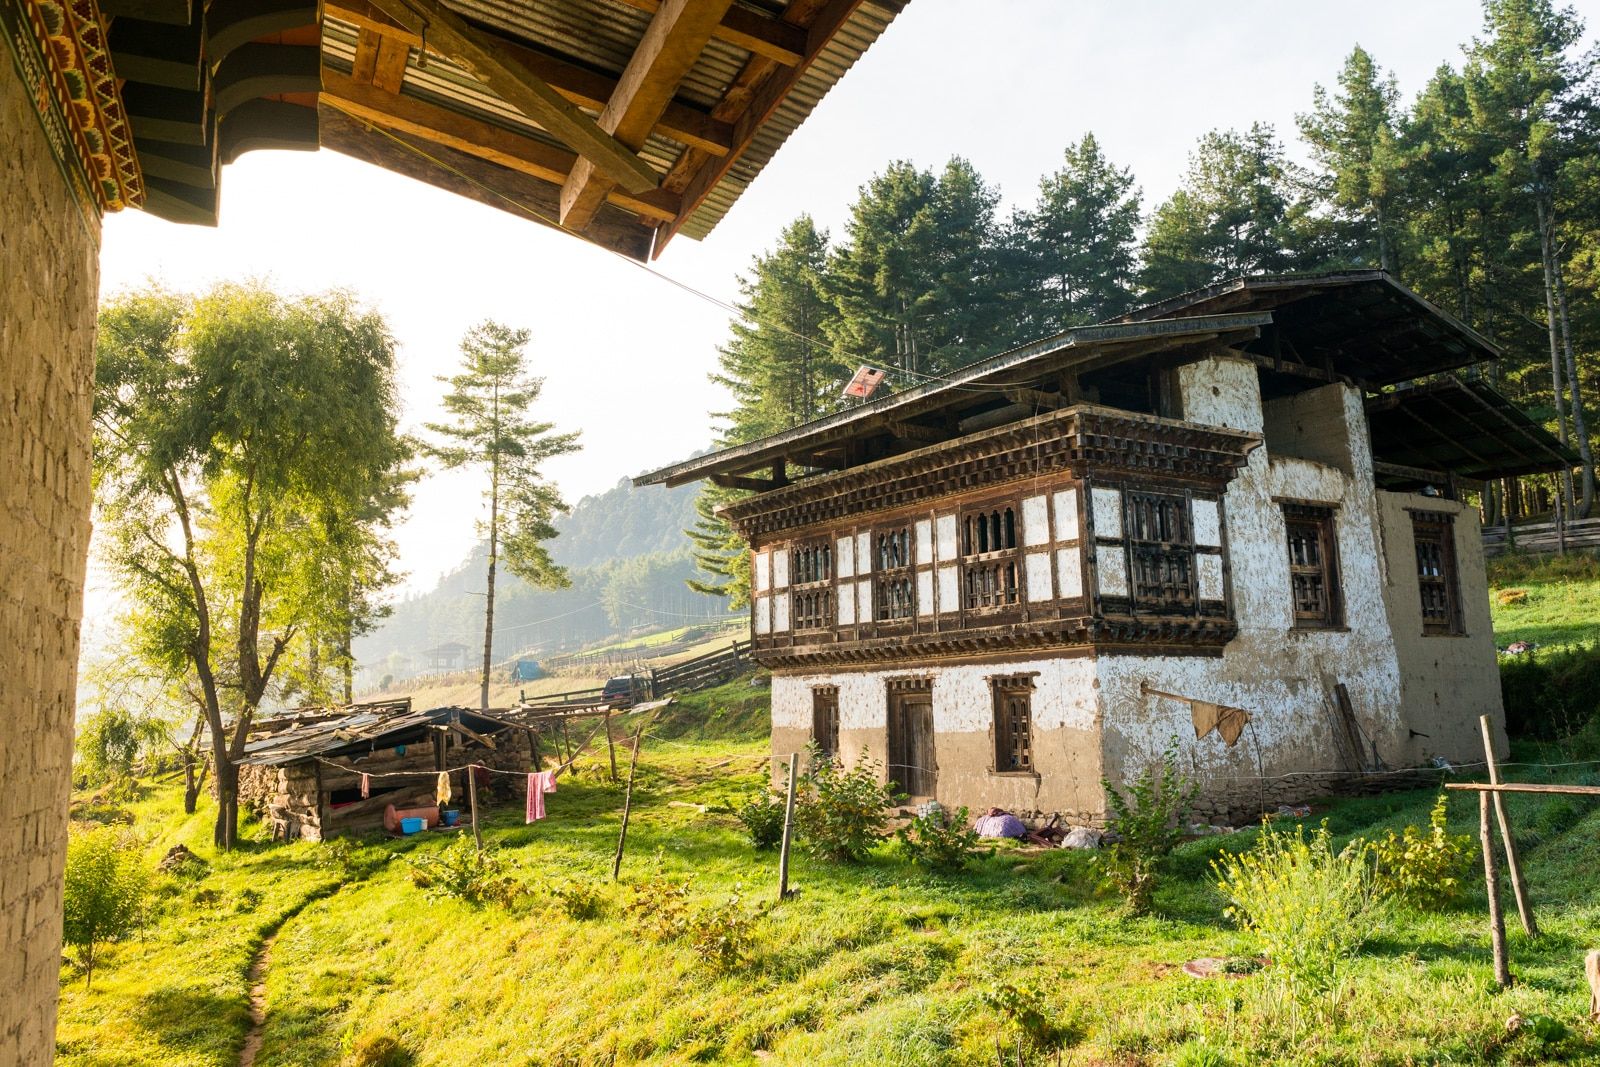 Stunning photos of Bhutan - Farmhouse homestay in Phobjikha Valley - Lost With Purpose travel blog